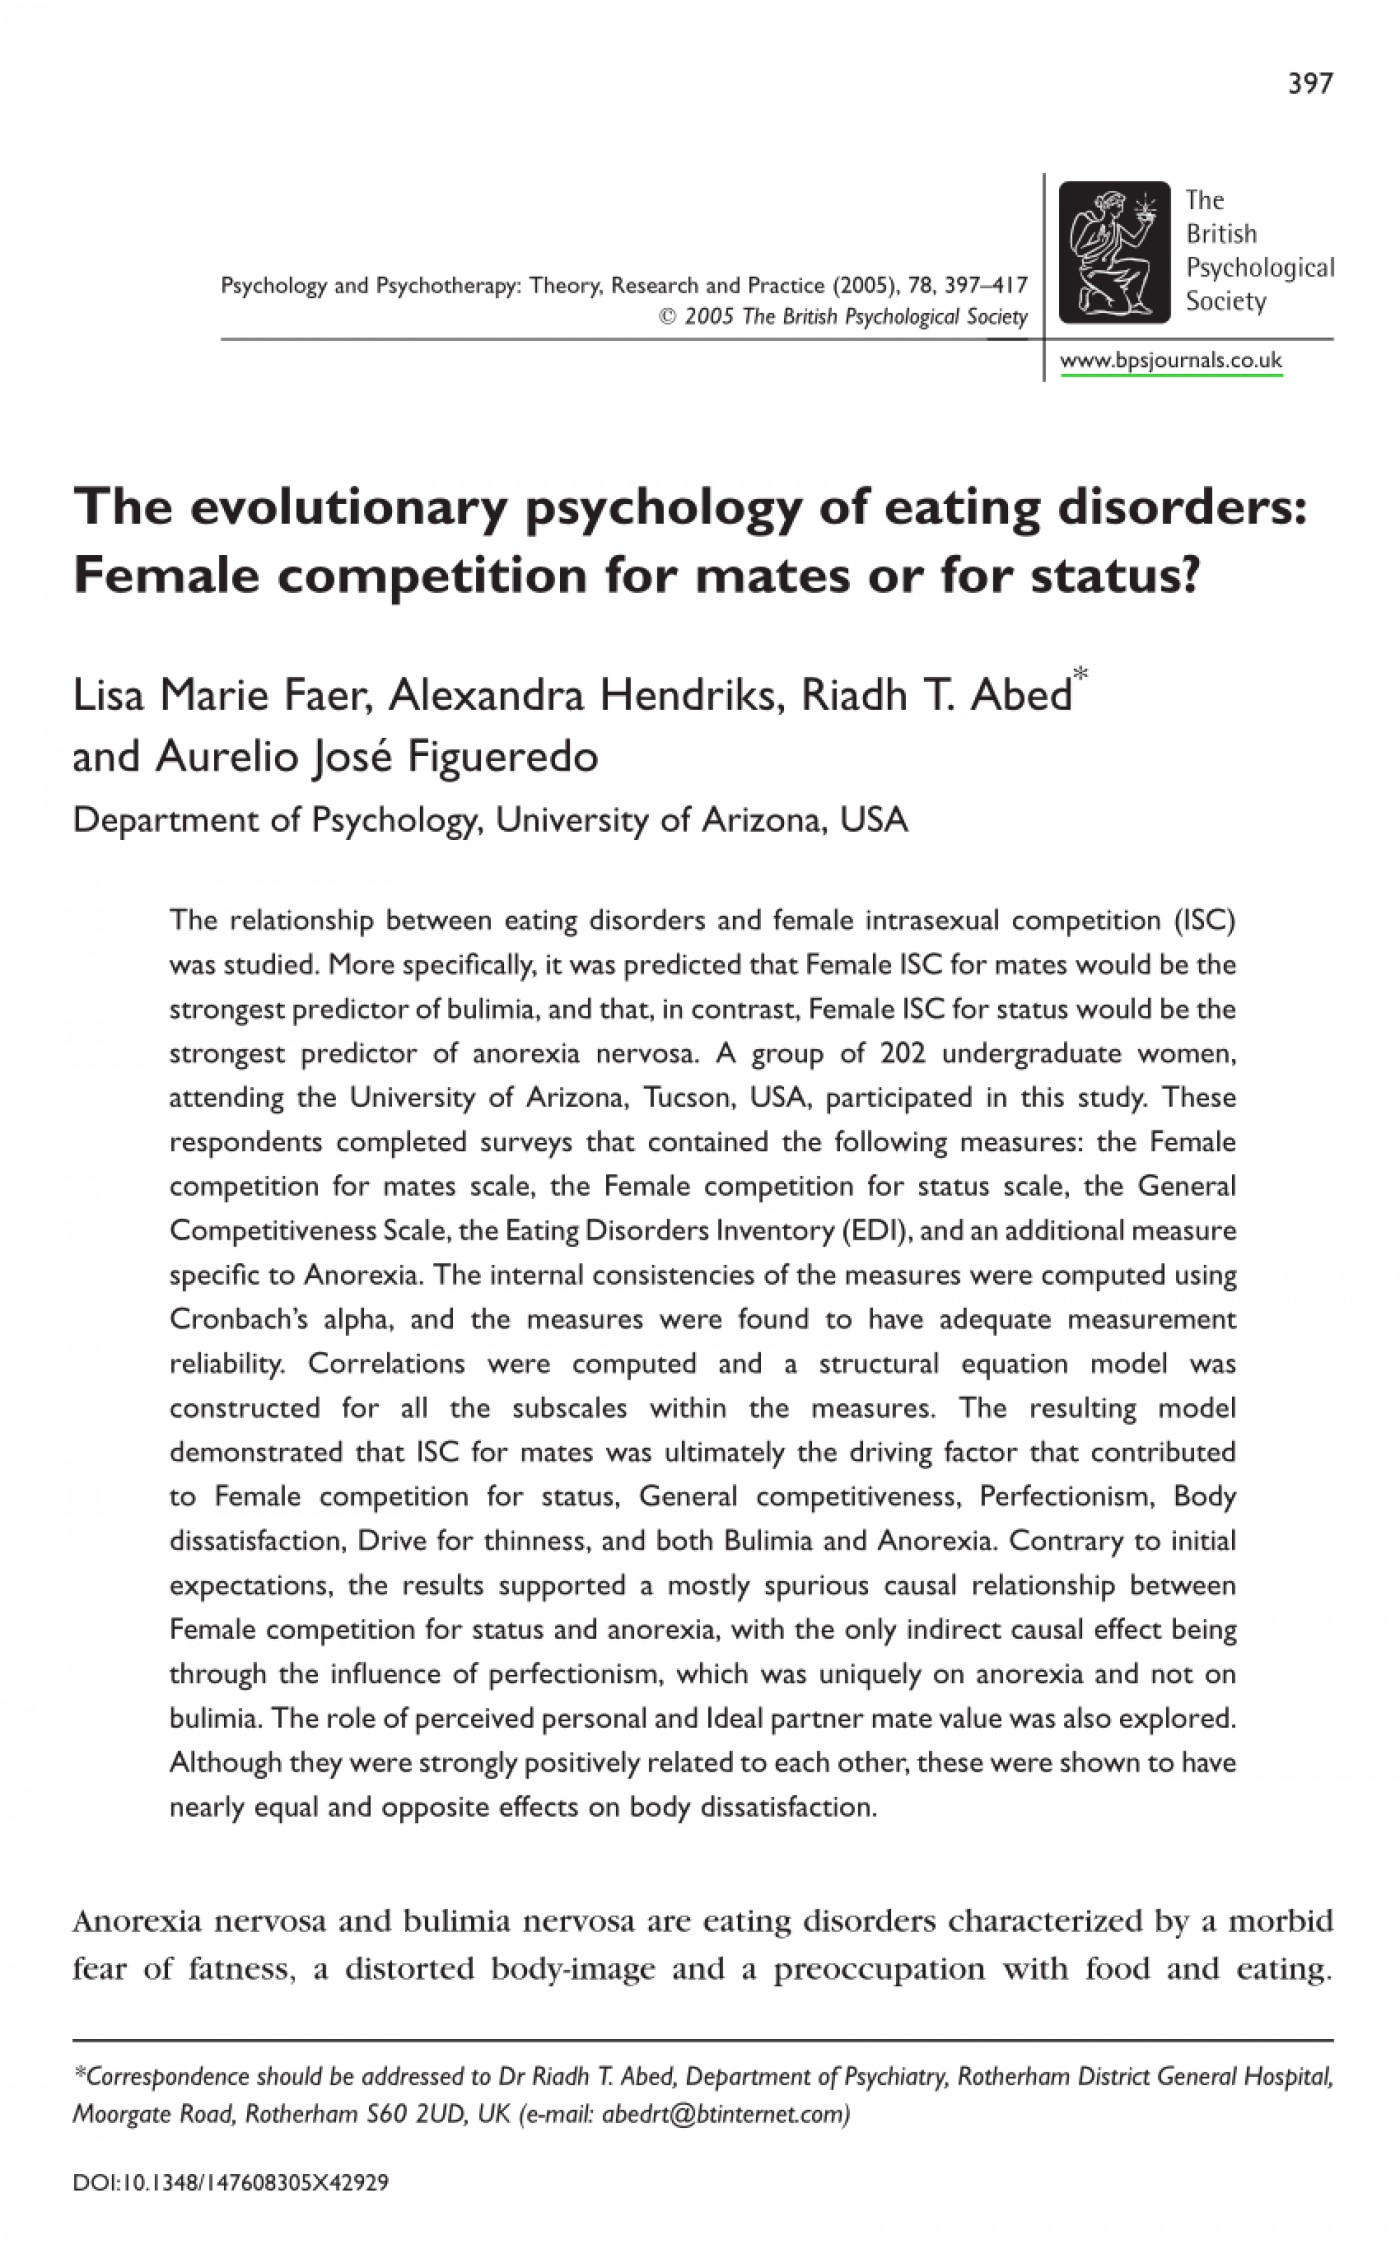 006 Psychology Research Paper On Eating Disorders Top Topics 1400